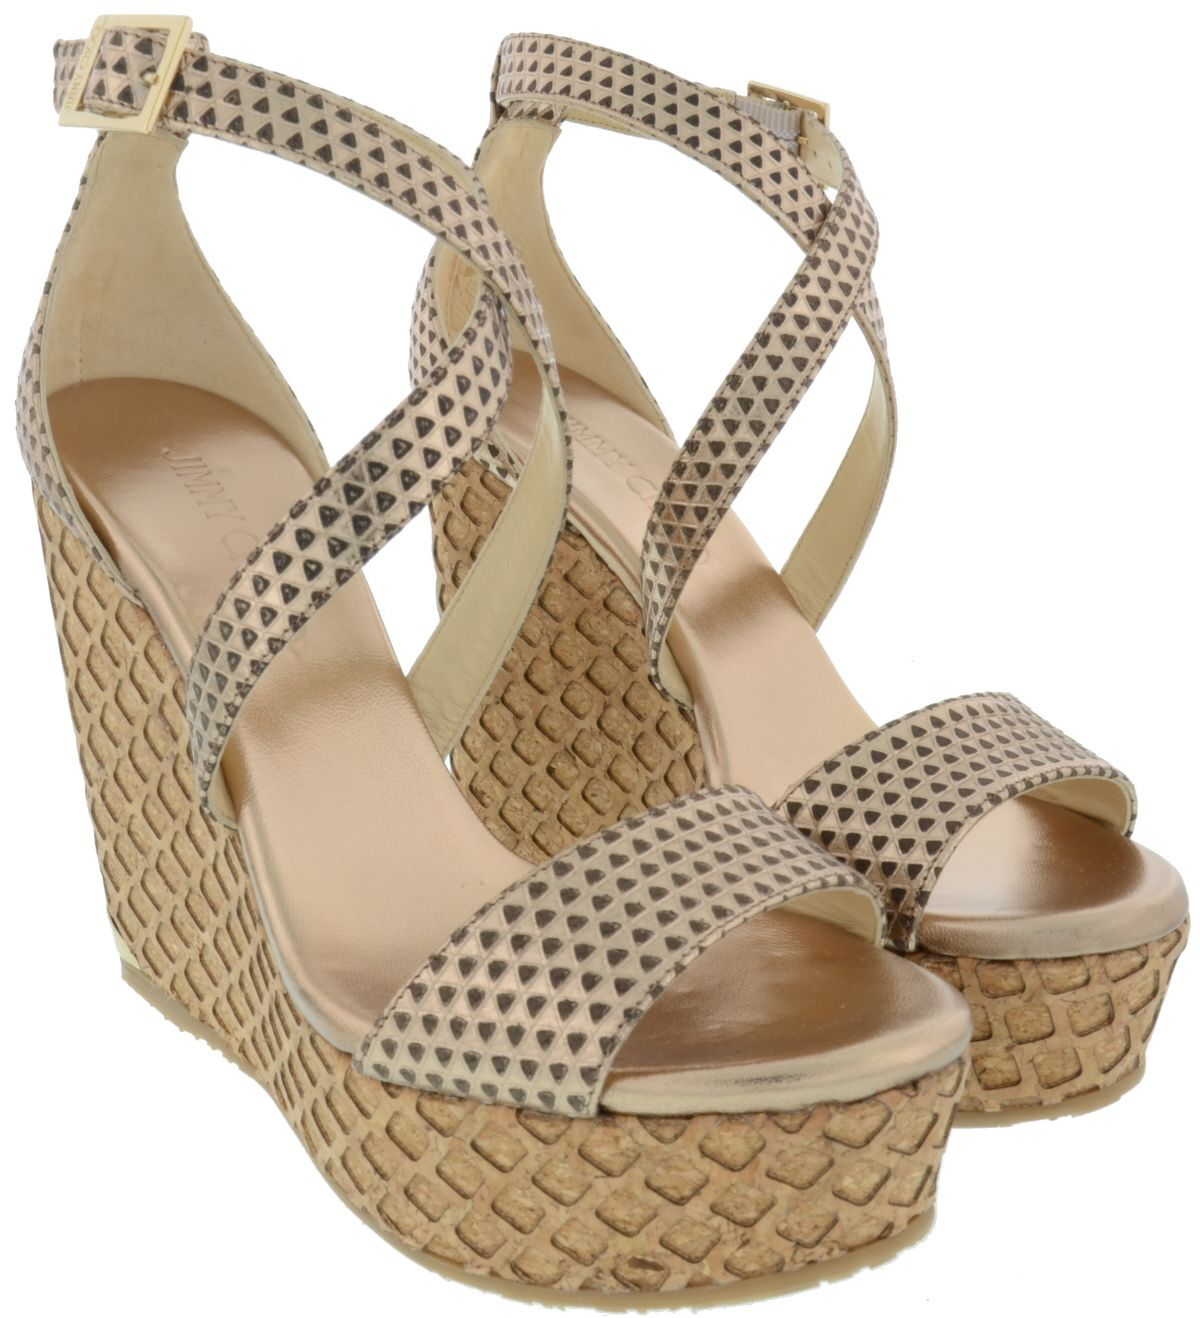 Jimmy Choo Portia Wedge Sandals